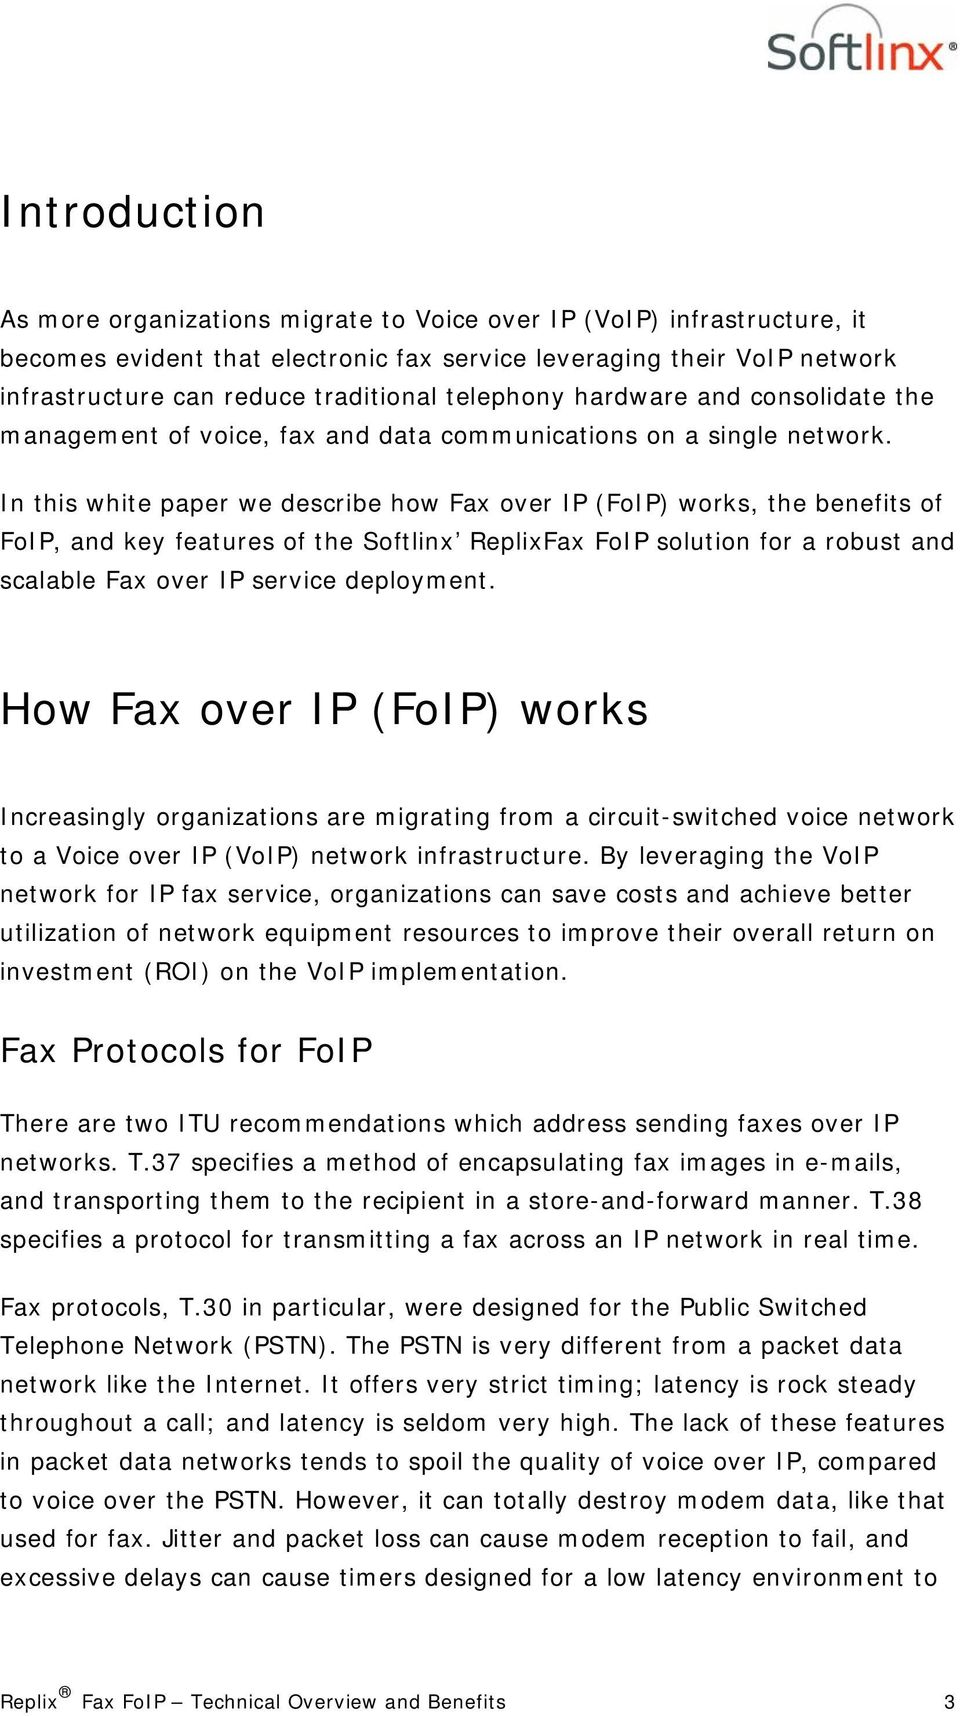 In this white paper we describe how Fax over IP (FoIP) works, the benefits of FoIP, and key features of the Softlinx ReplixFax FoIP solution for a robust and scalable Fax over IP service deployment.